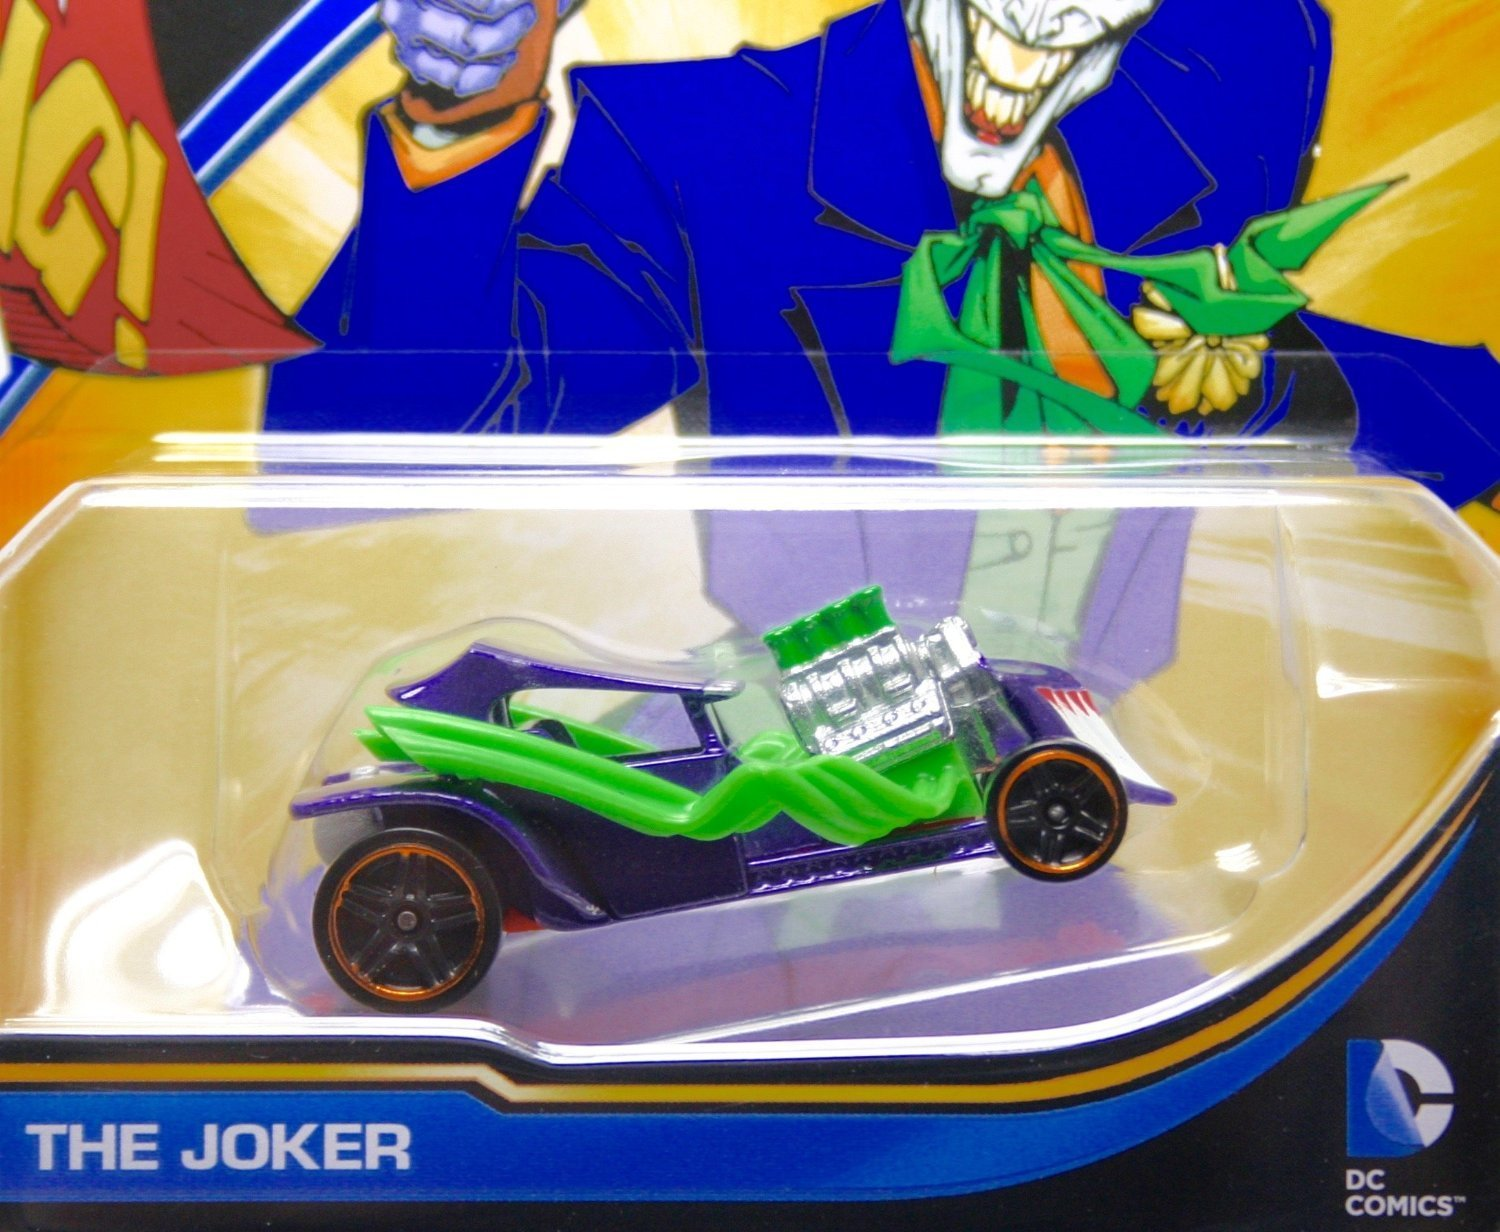 THE JOKER * DC COMICS * 1:64 Scale Hot Wheels Character Vehicle (New 2015 Packaging)